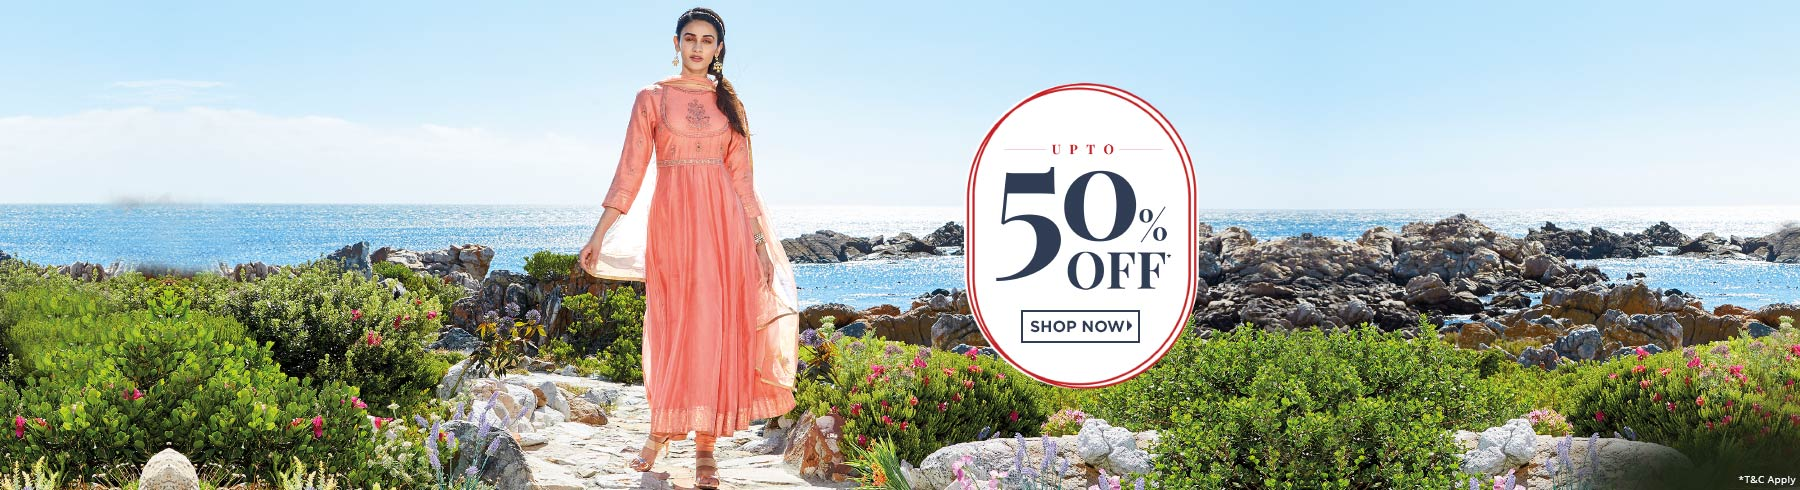 Biba Special Discounts Upto 50% Off on Women Dresses